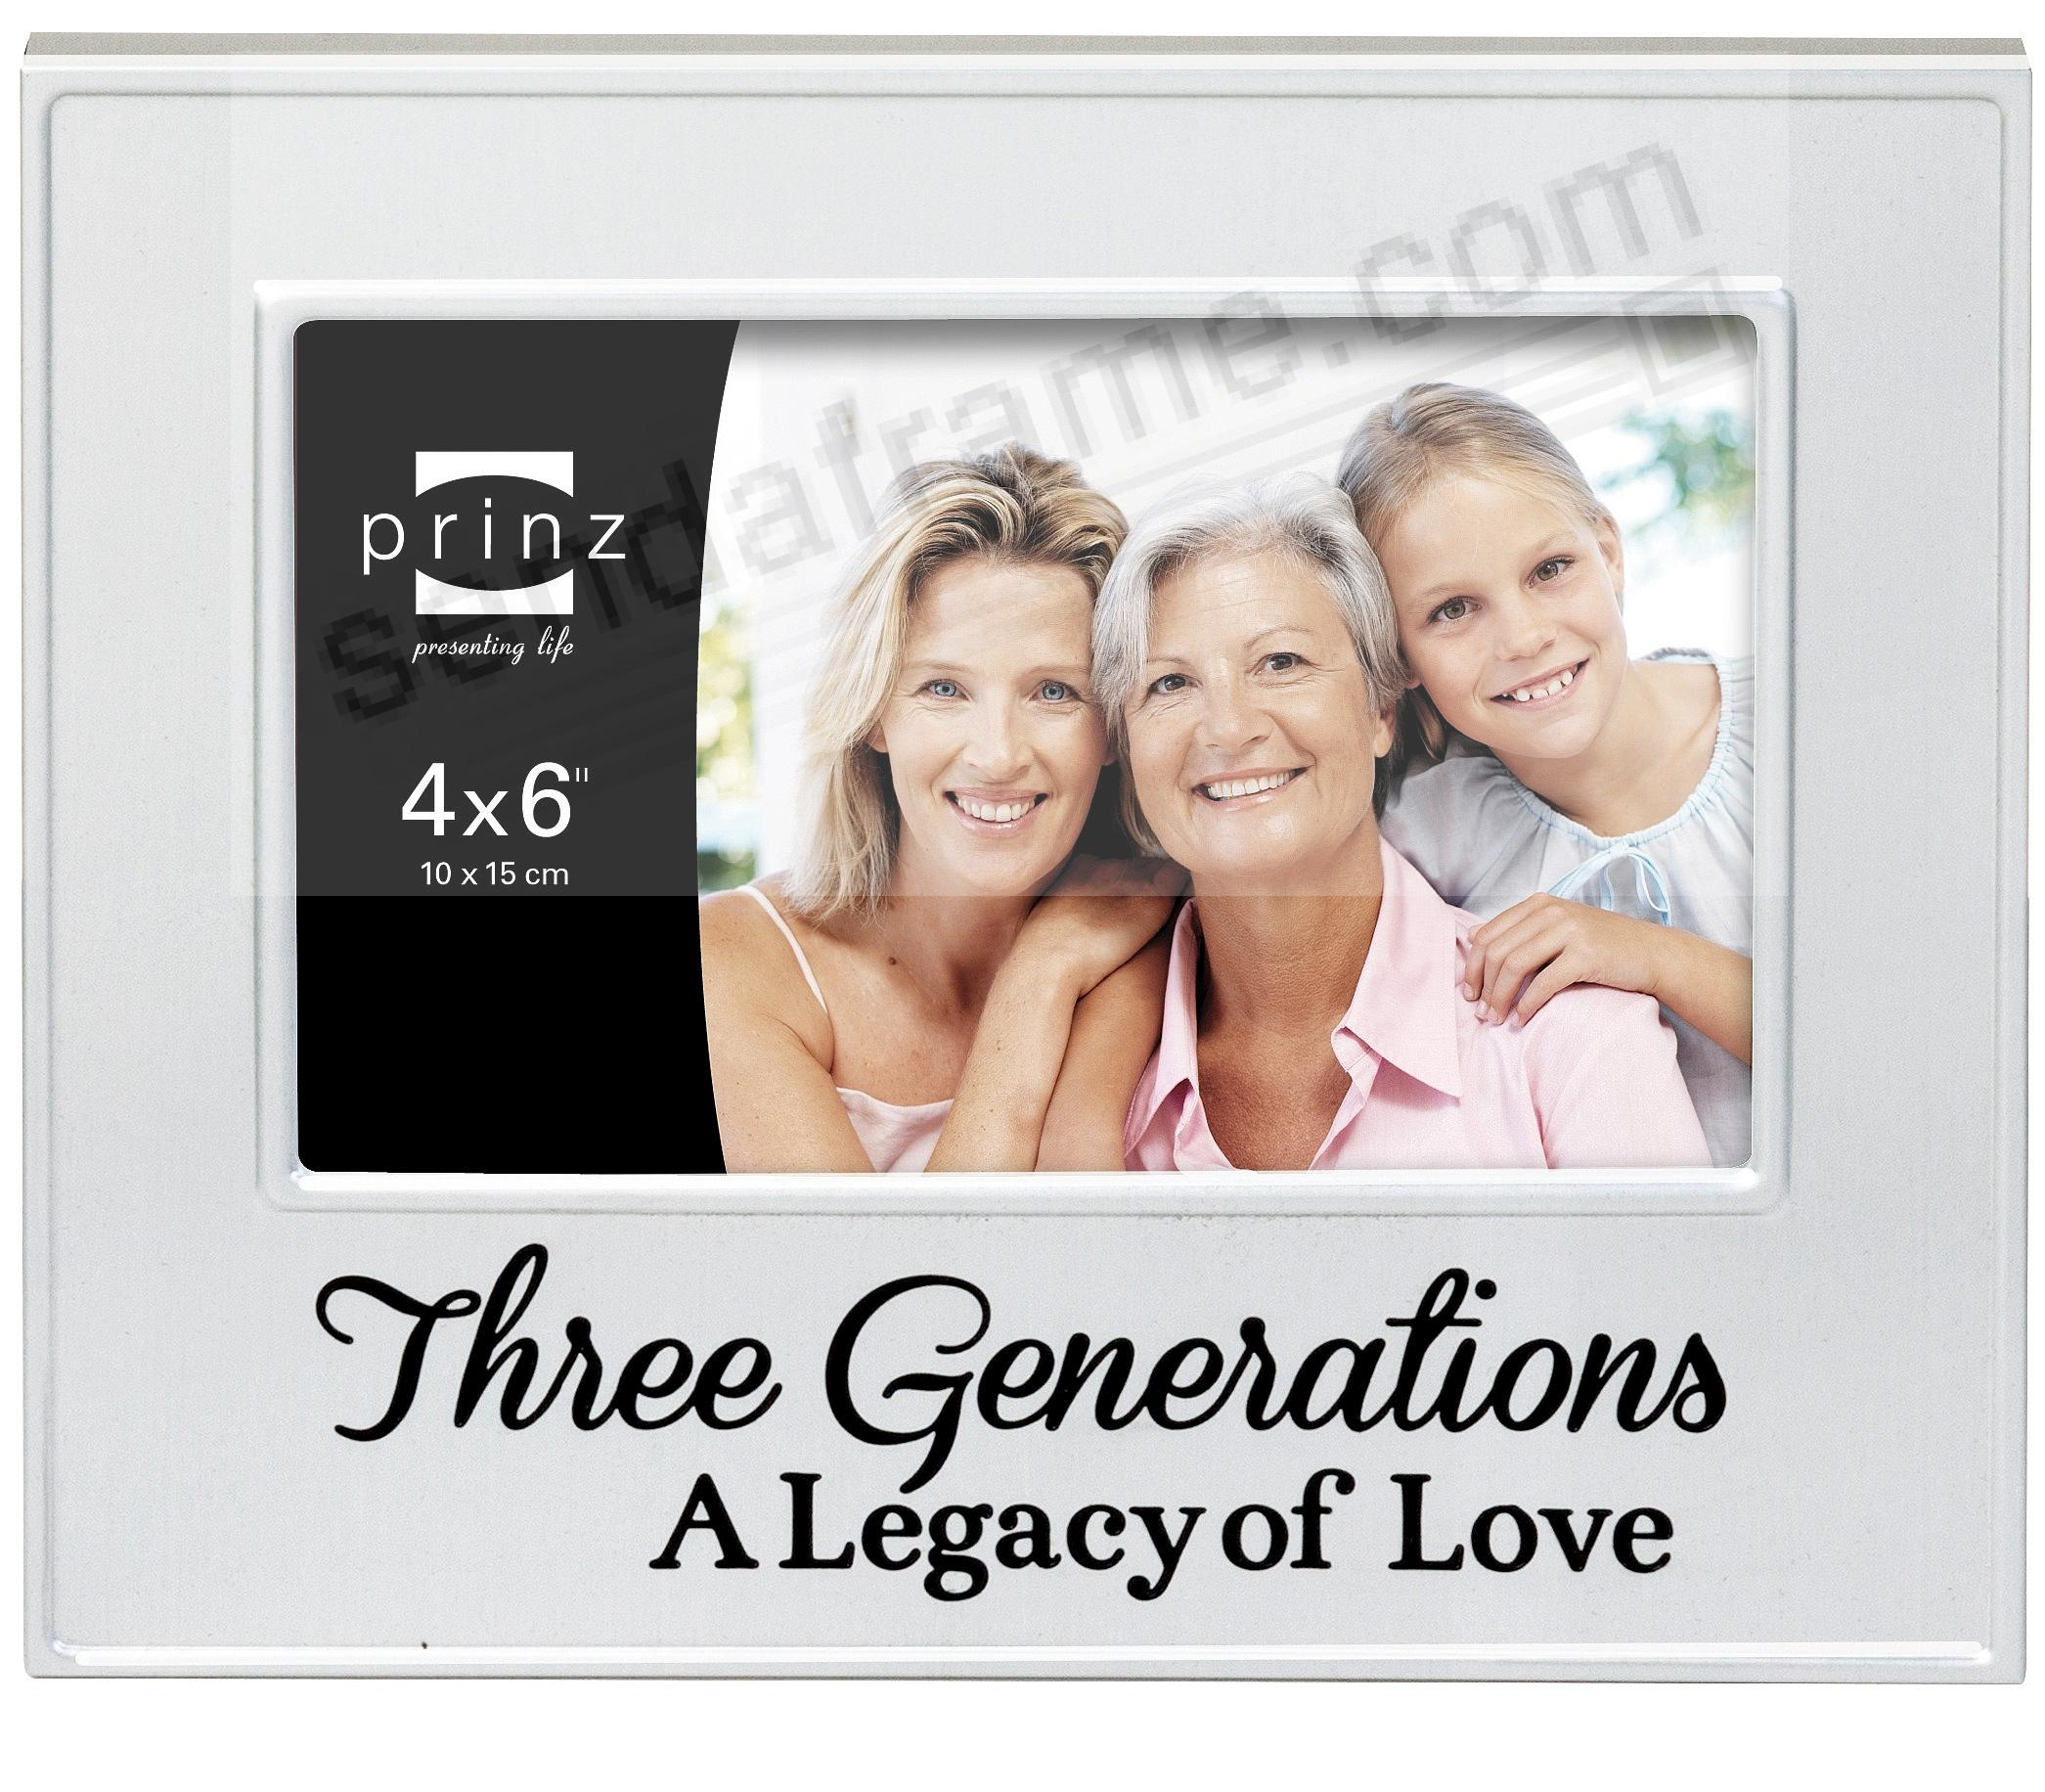 THREE GENERATIONS A Legacy of Love Brushed Silver 6x4 frame by Prinz ...